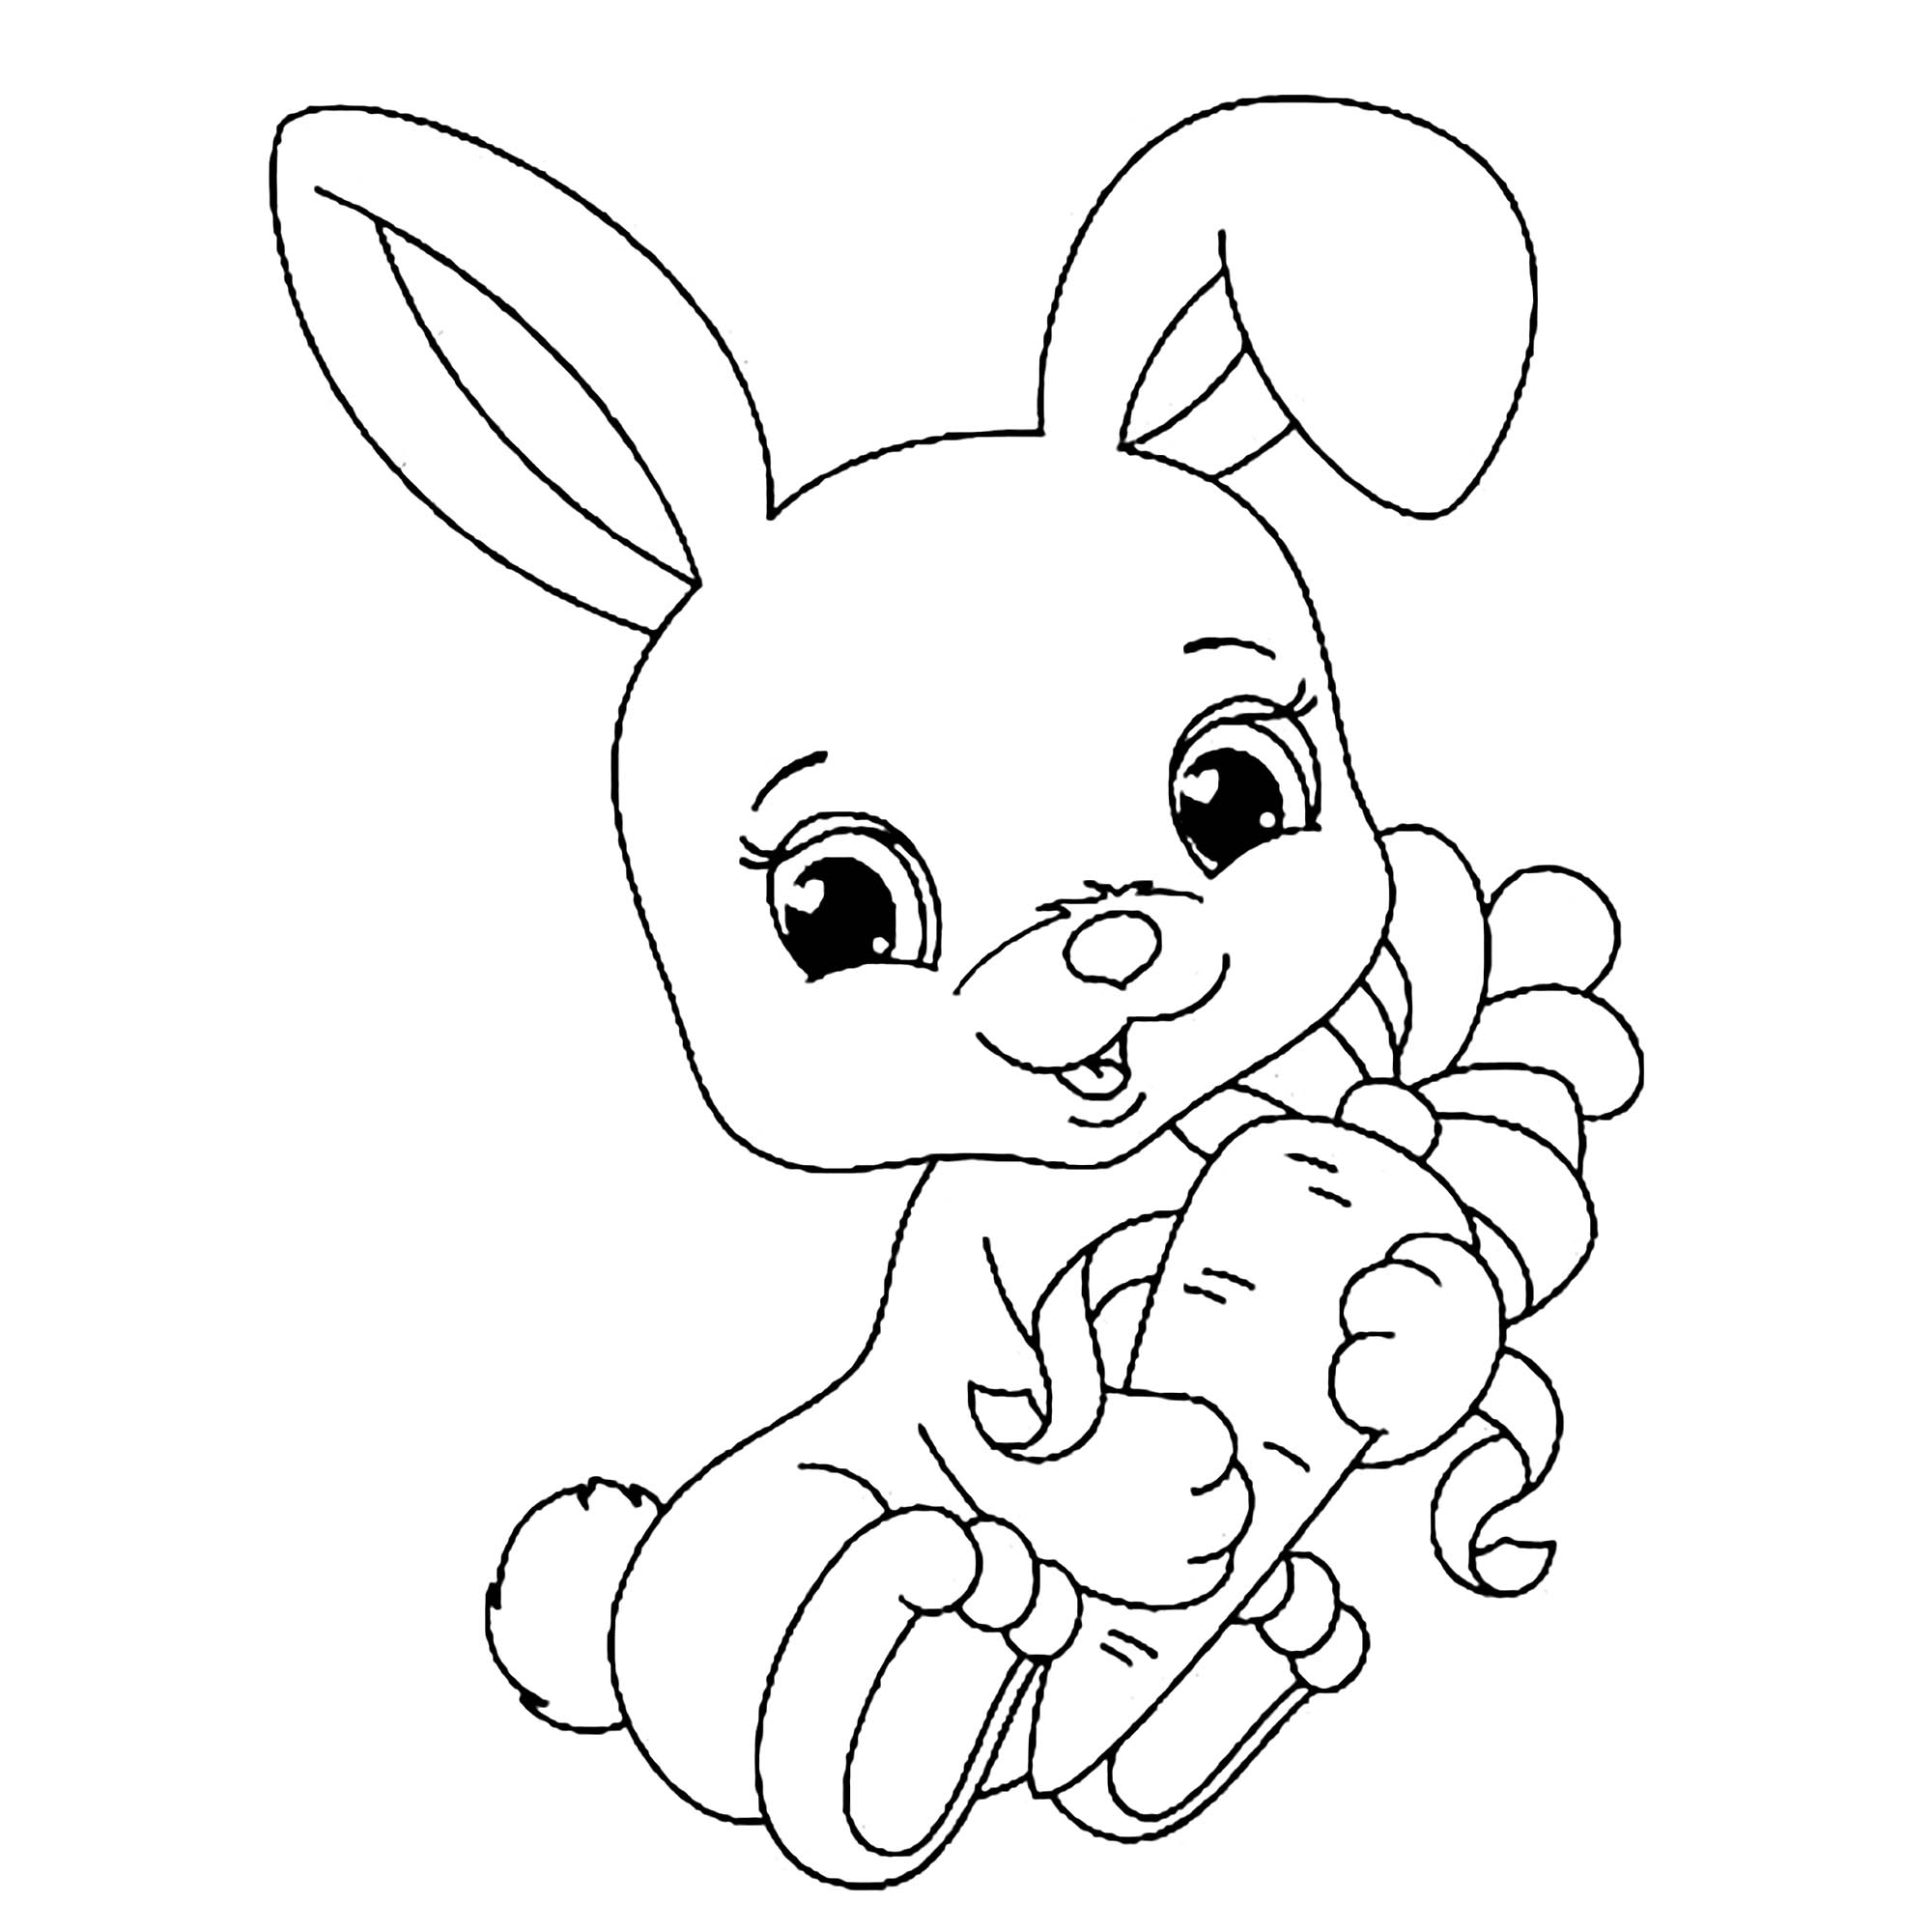 bunny coloring pictures rabbit to print for free rabbit kids coloring pages pictures bunny coloring